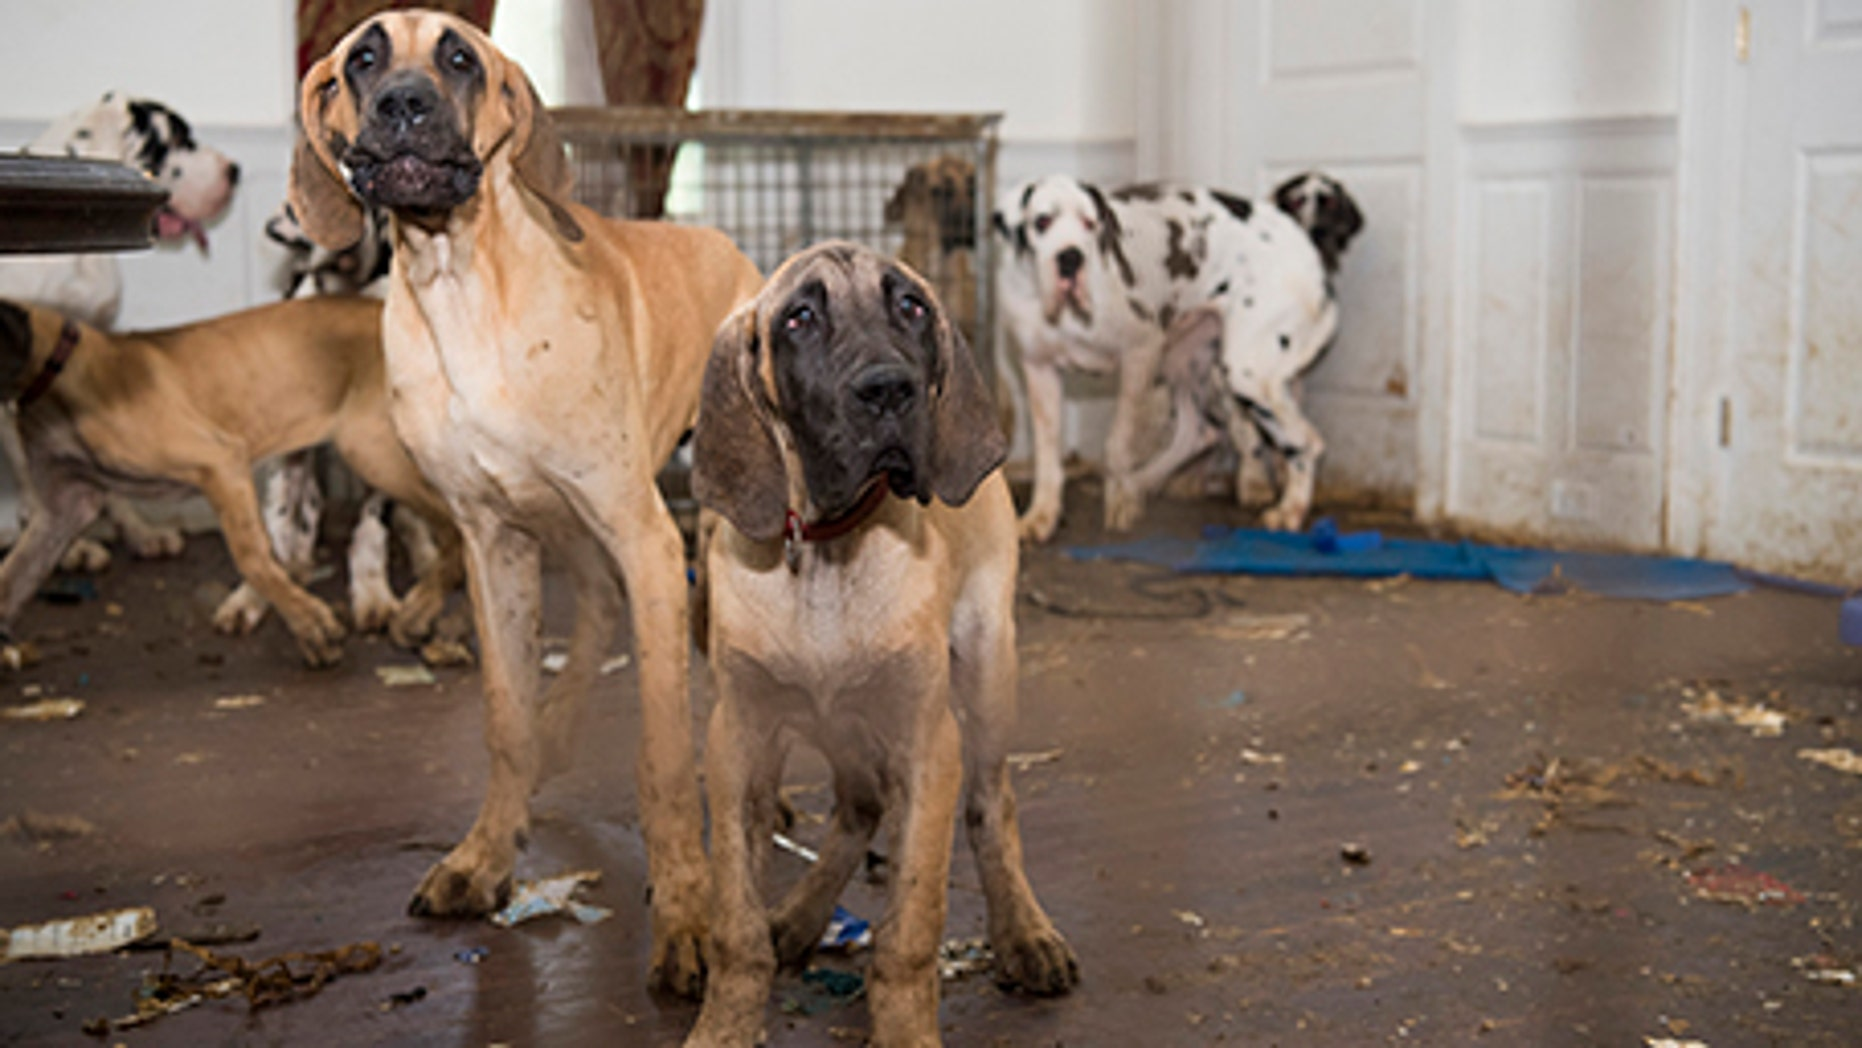 84 Great Danes were seized from Christina Fay's New Hampshire home in June.